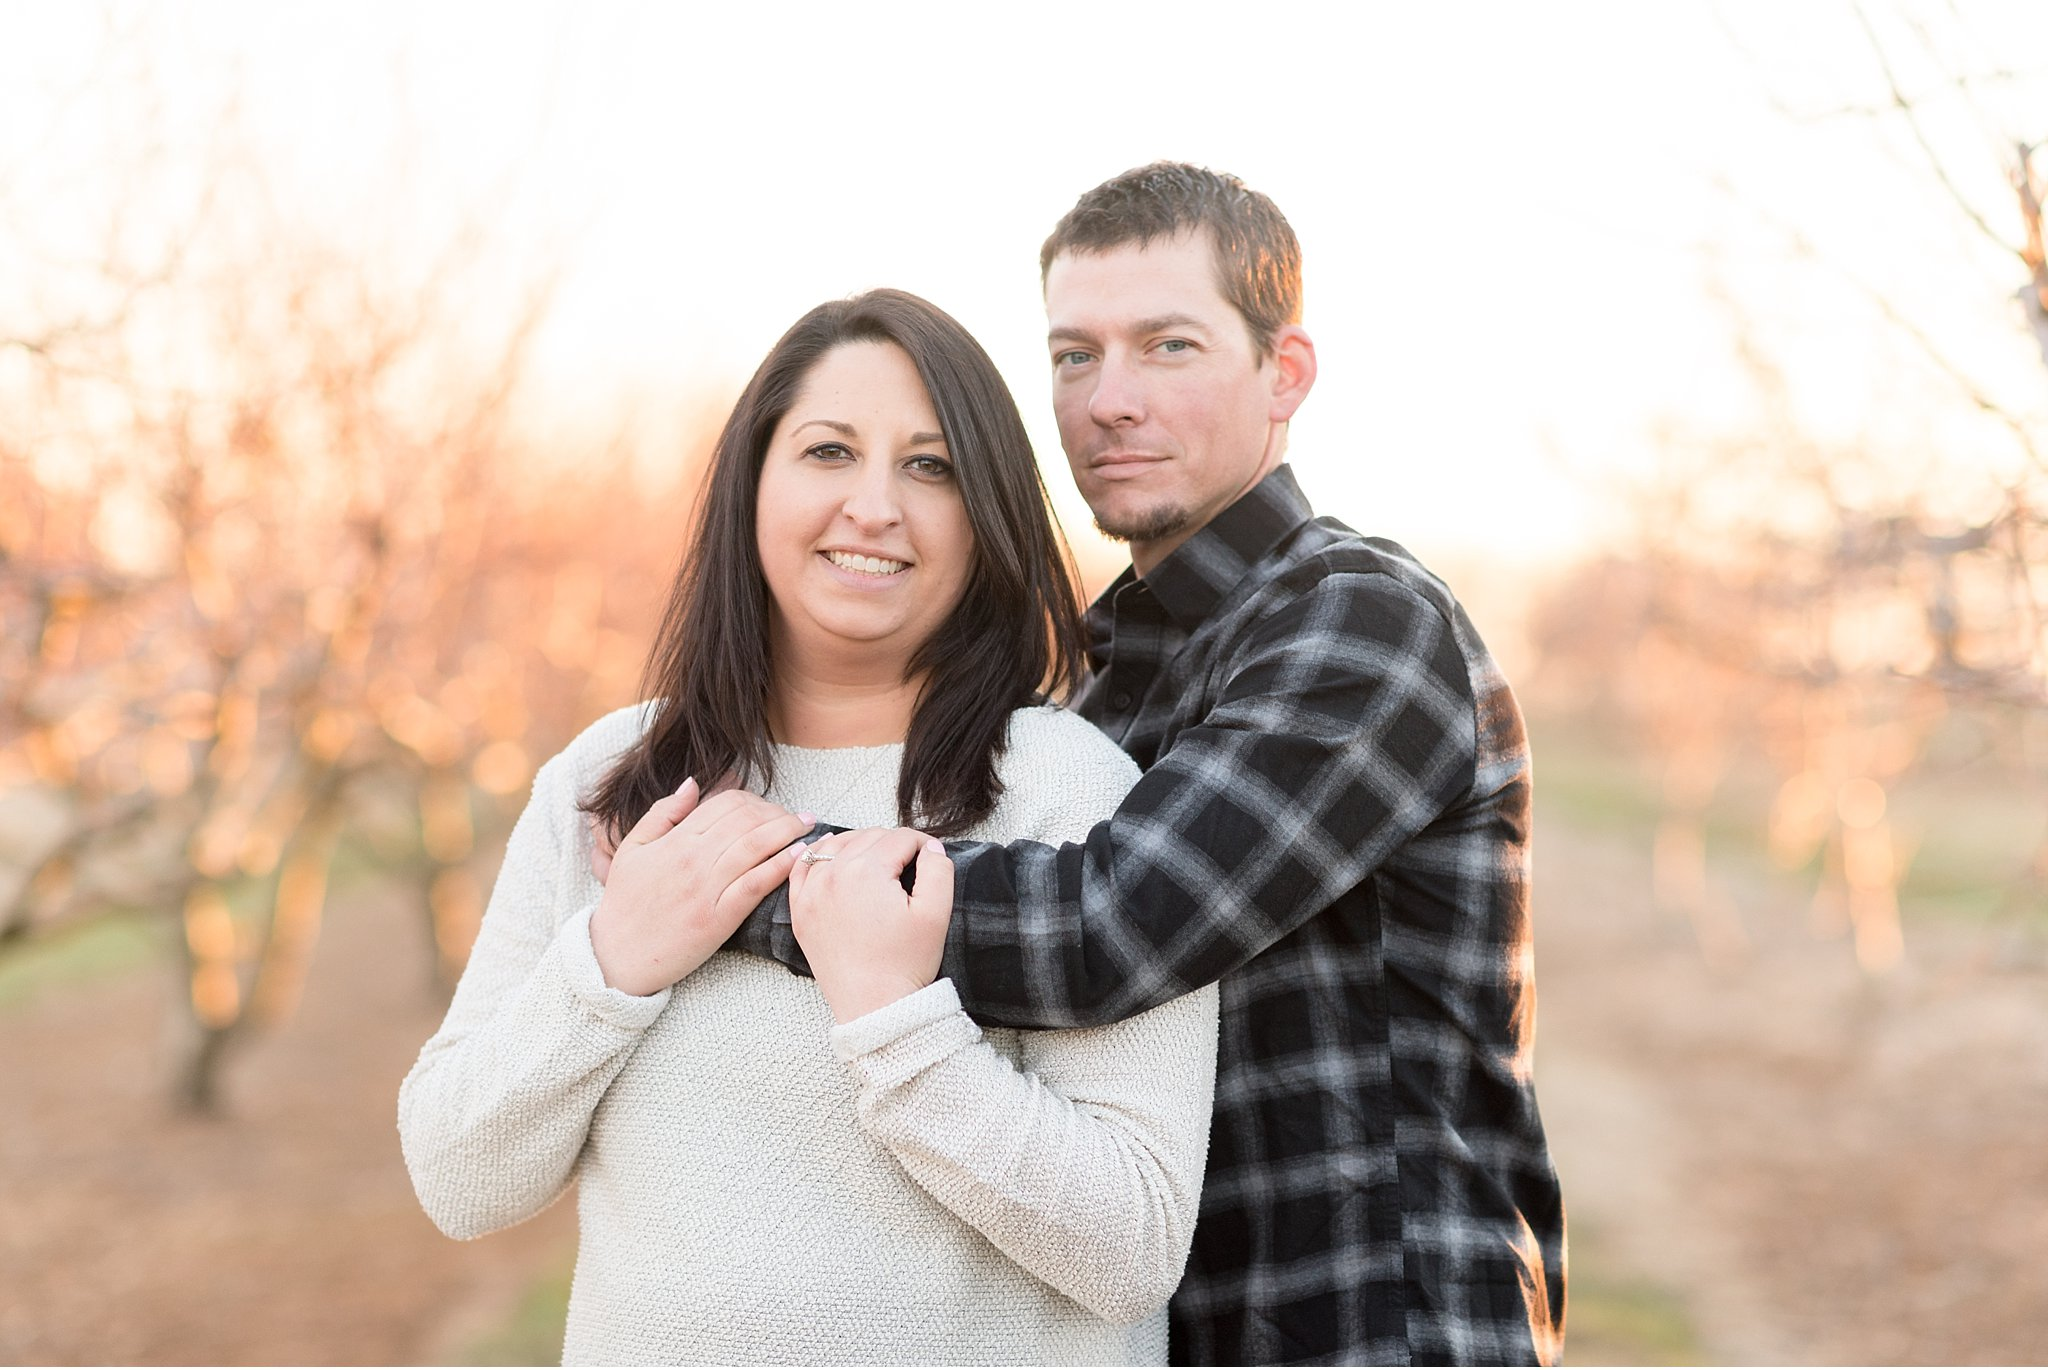 New Providence orchard Lancaster County Wedding and engagement photographer photo_0965.jpg